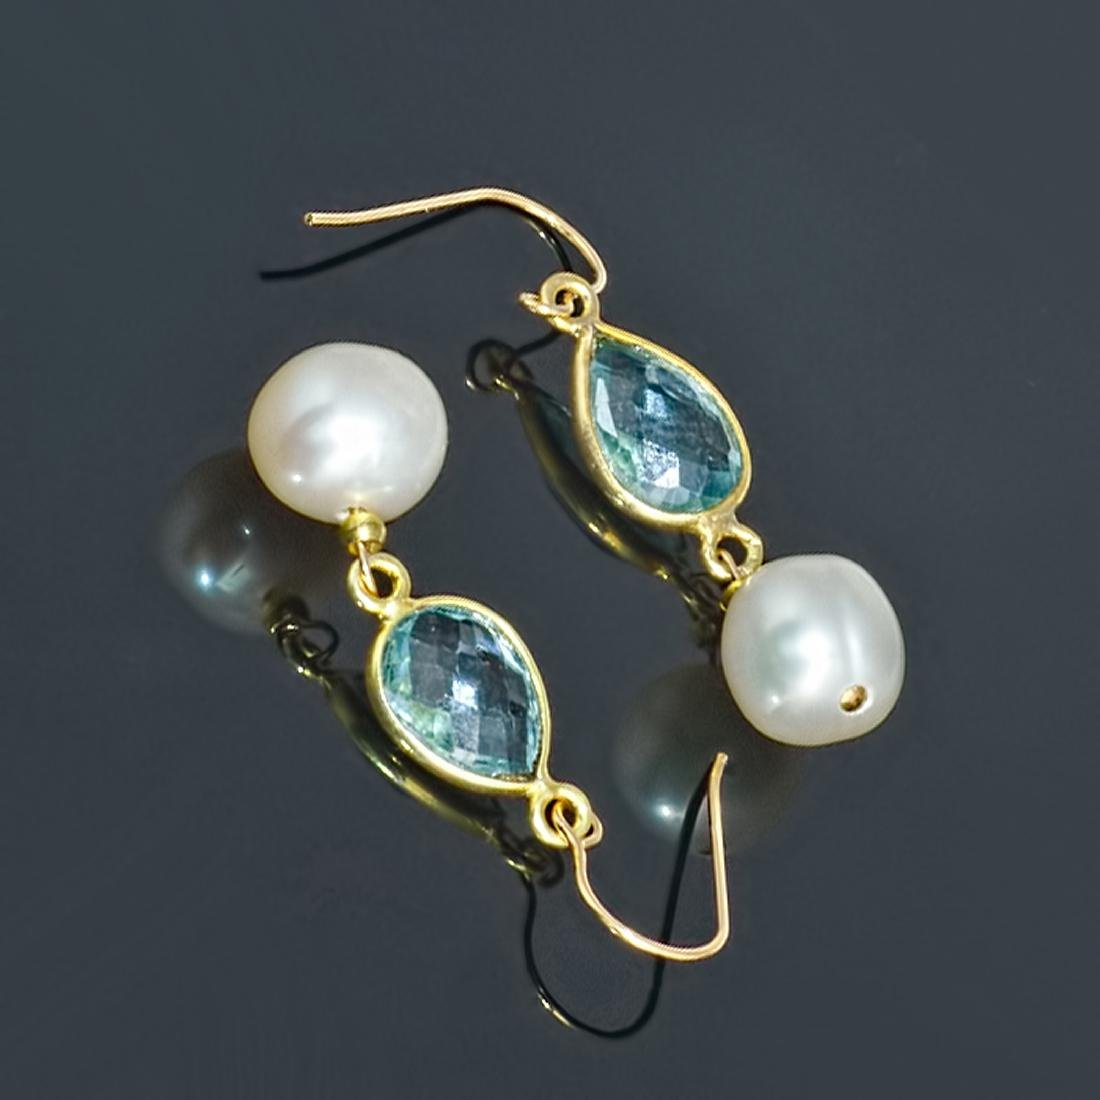 14kt Gold Earrings with Pearls and Sky Blue Topazes - 3